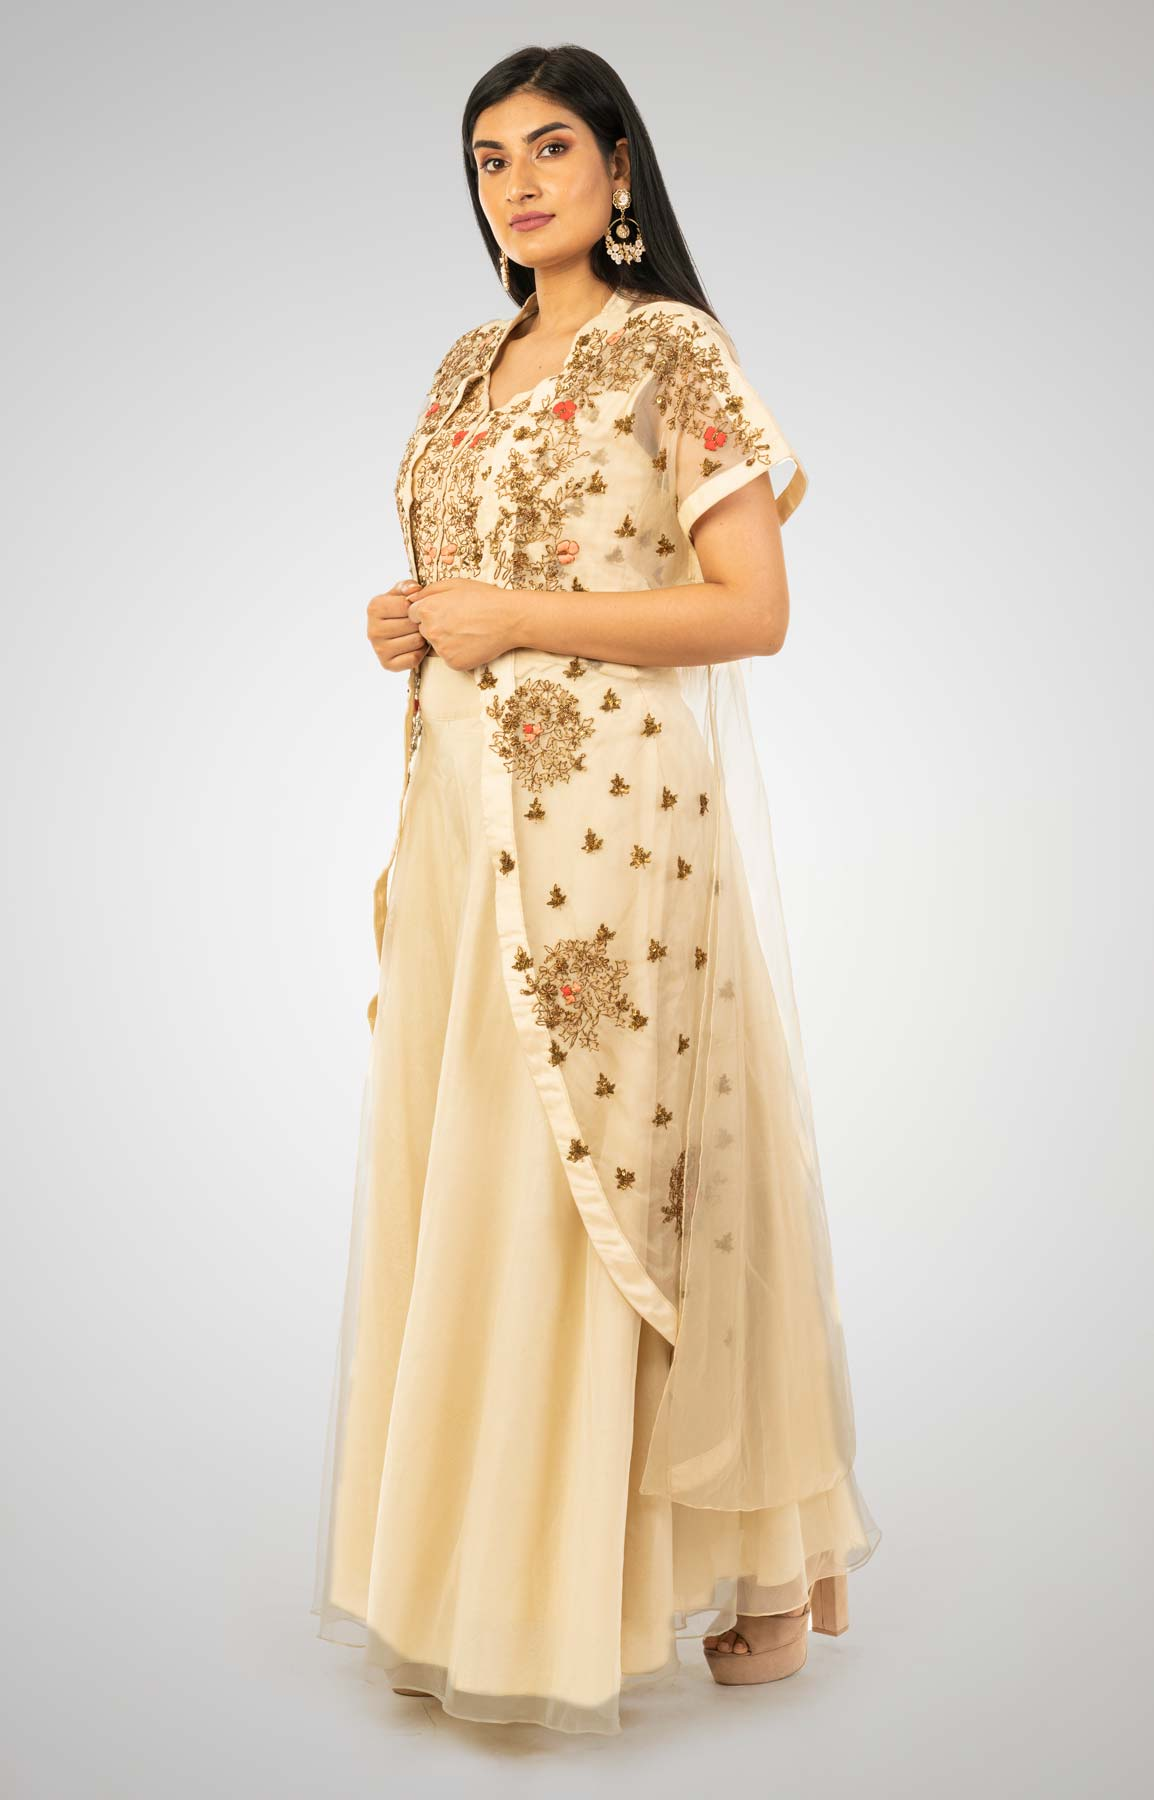 Double Cream Sharara Suit Teamed With Hand Embroidered Jacket And Crop Top – Viraaya By Ushnakmals